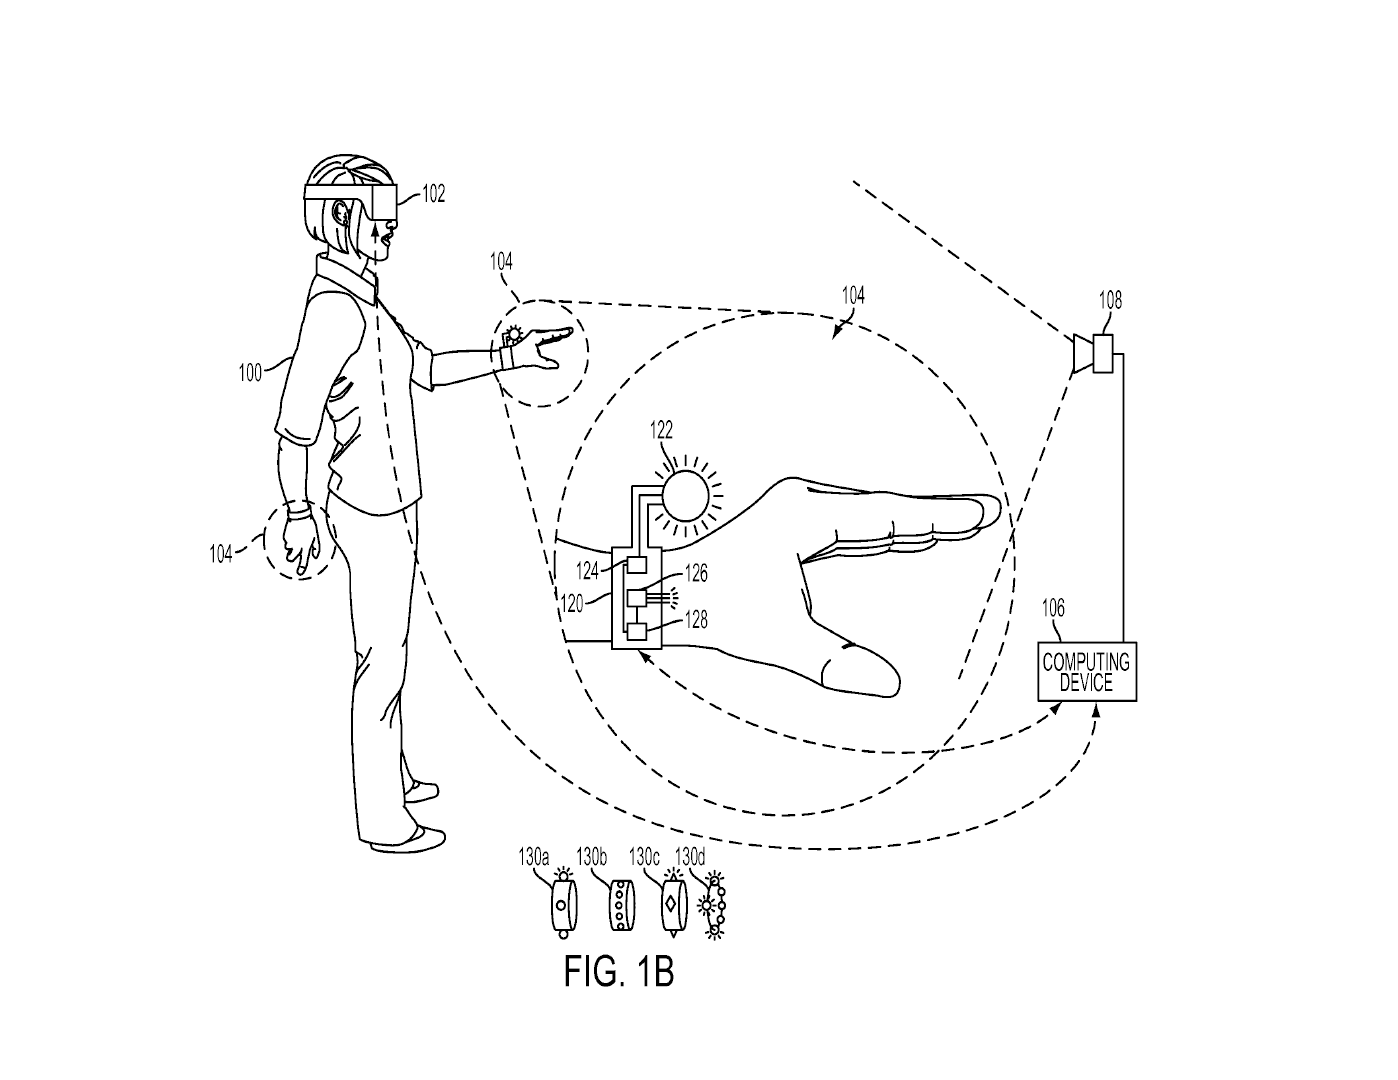 Sony Files Patent For Vr Glove Controller Usable With Psvr